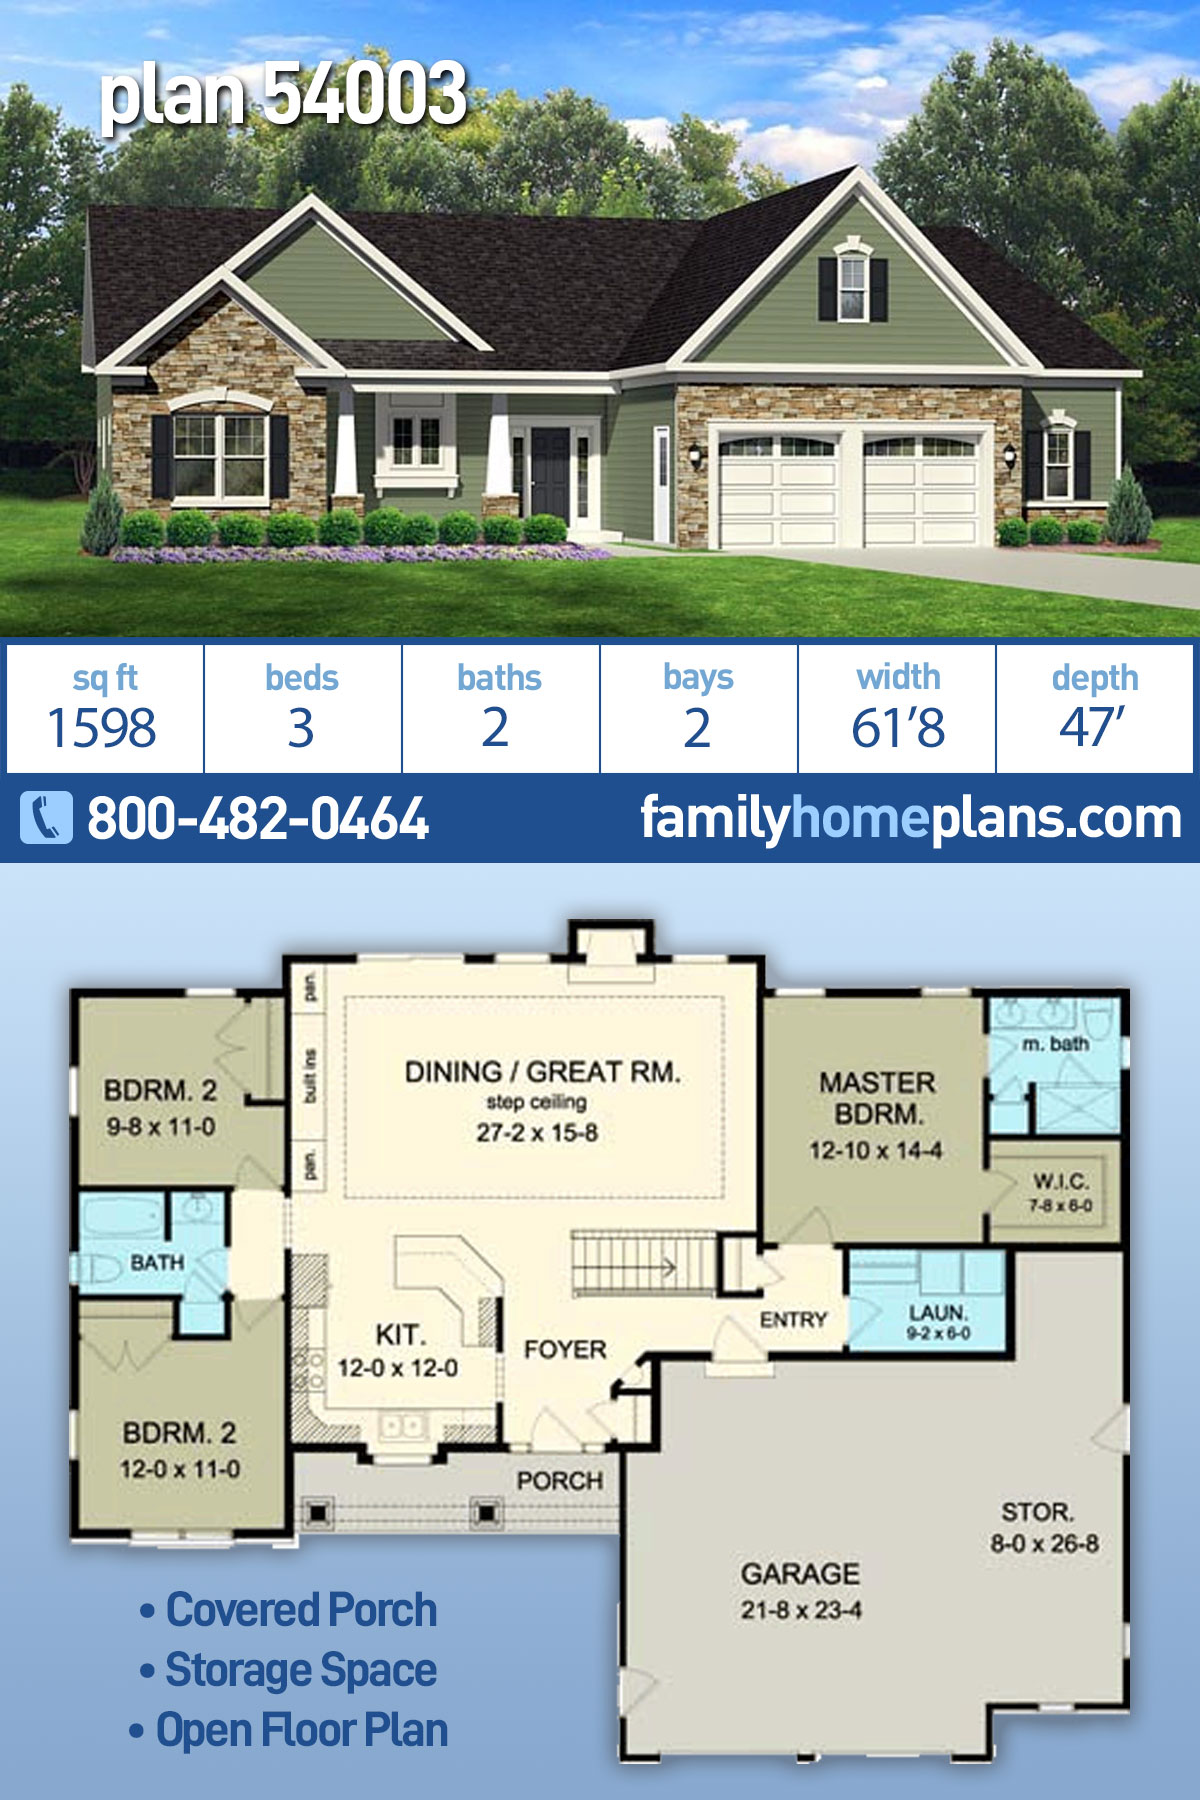 Ranch House Plan 54003 with 3 Beds, 2 Baths, 2 Car Garage